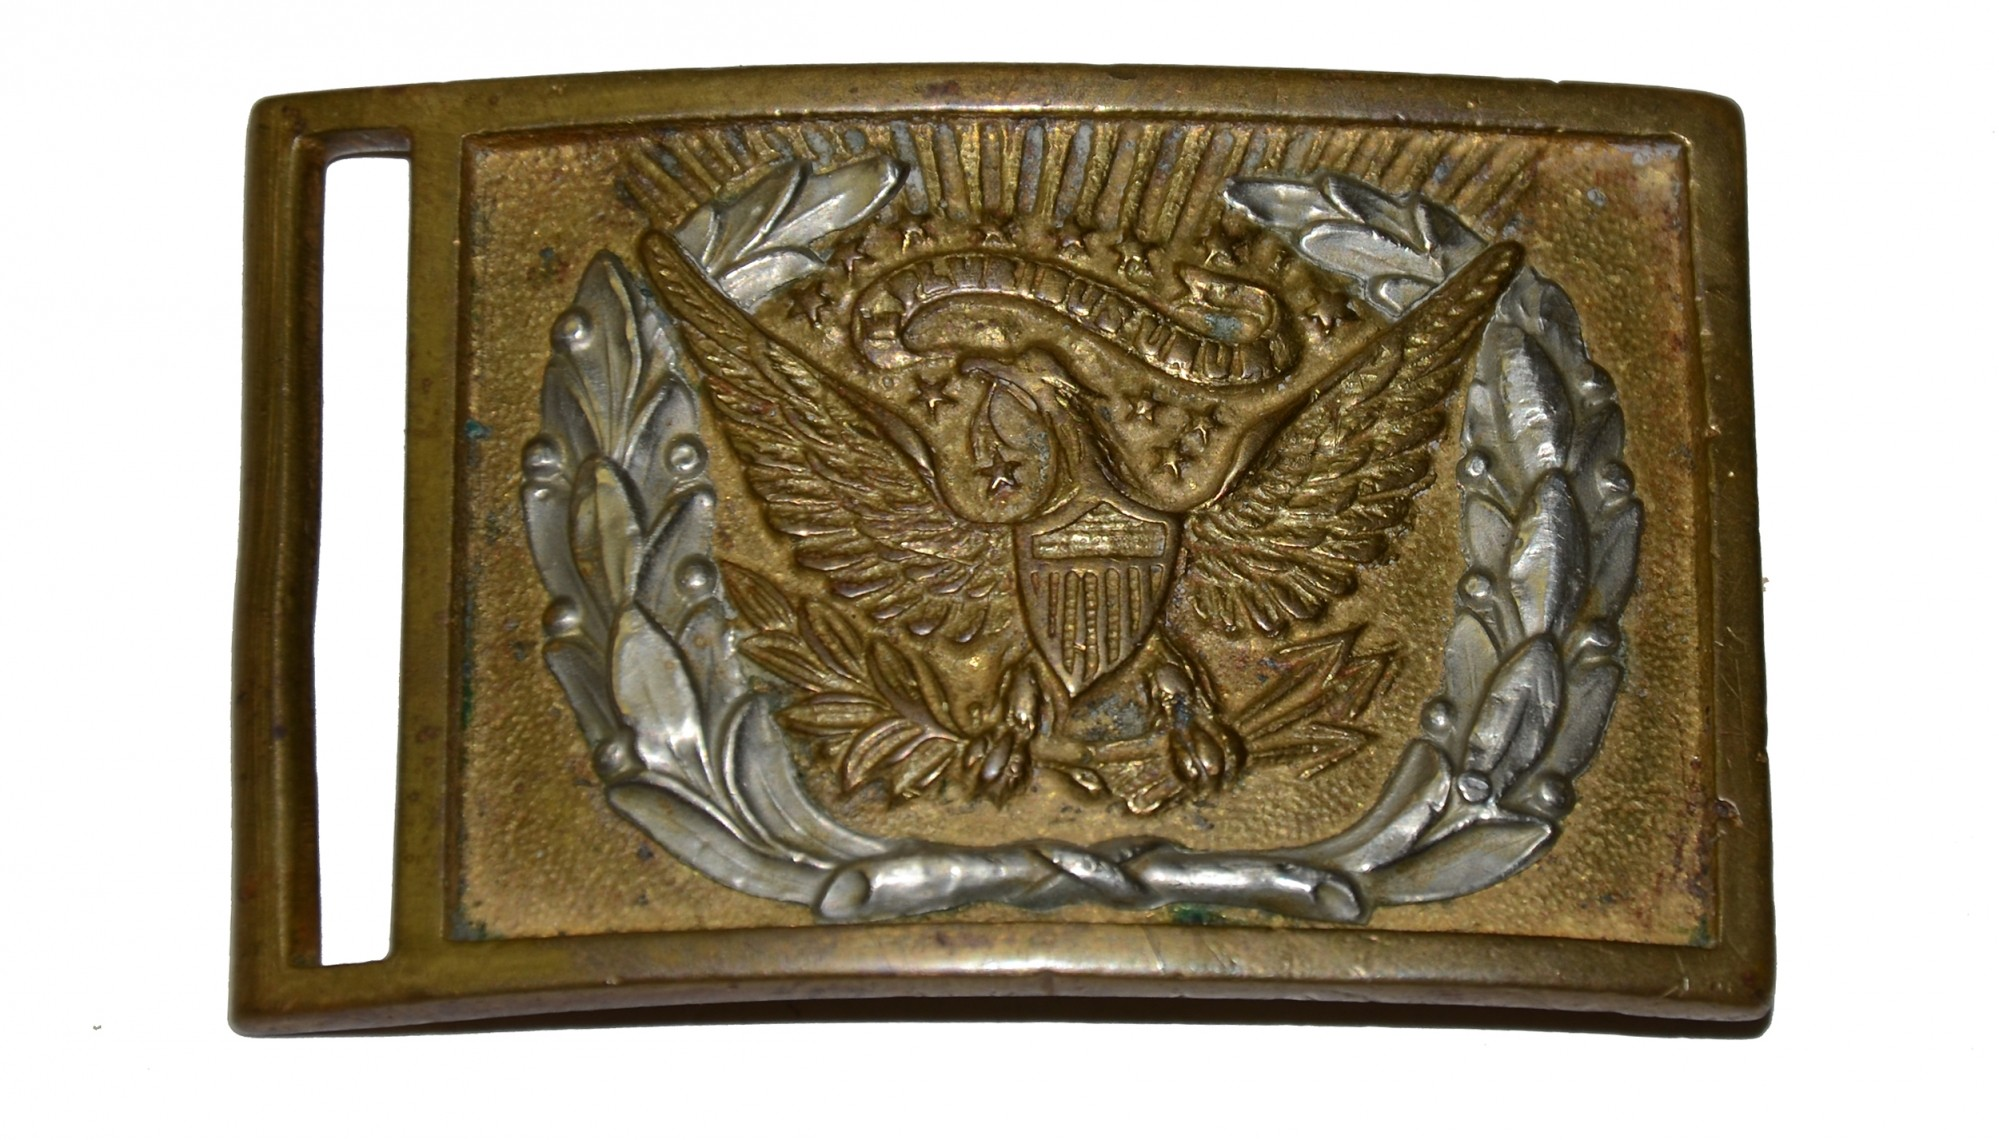 M1851 NCO RECTANGULAR BELT PLATE WITH NICKLE SILVER WREATH